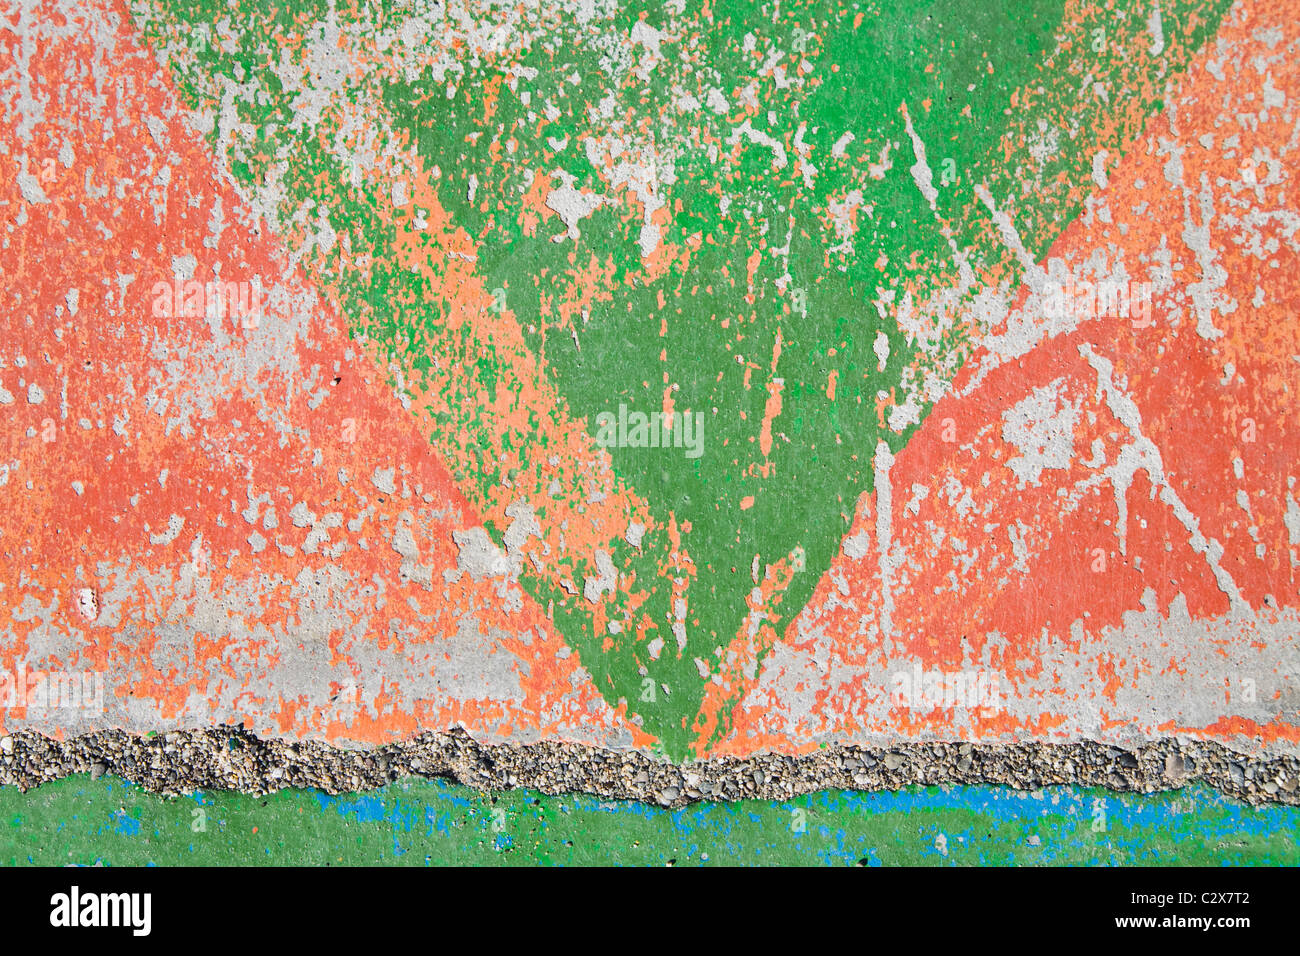 Distressed Paint On Concrete Wall - Stock Image